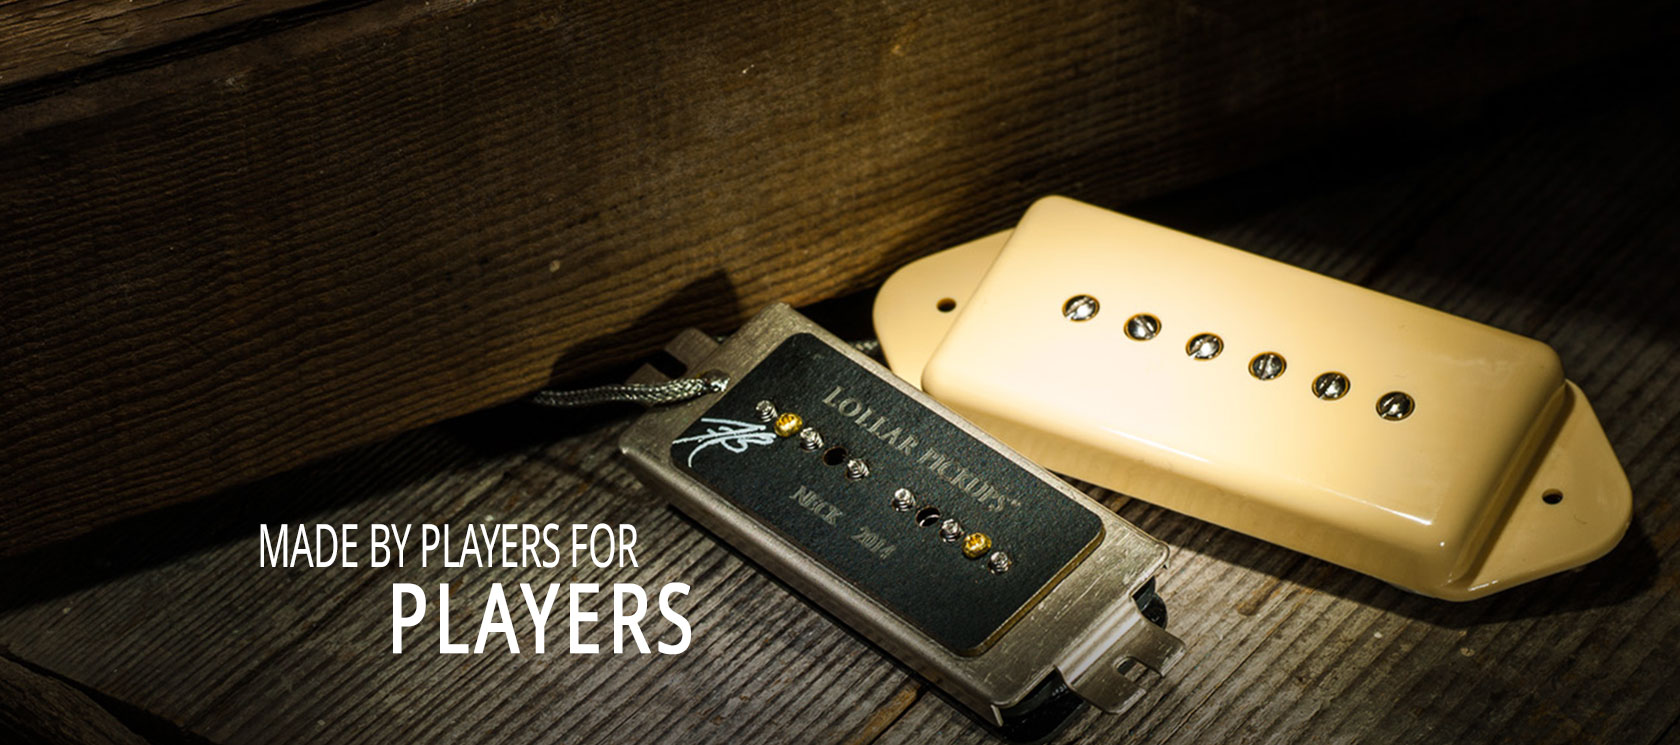 lollar p90 wiring diagram gm legend pickups high quality guitar handmade in usa made by players for